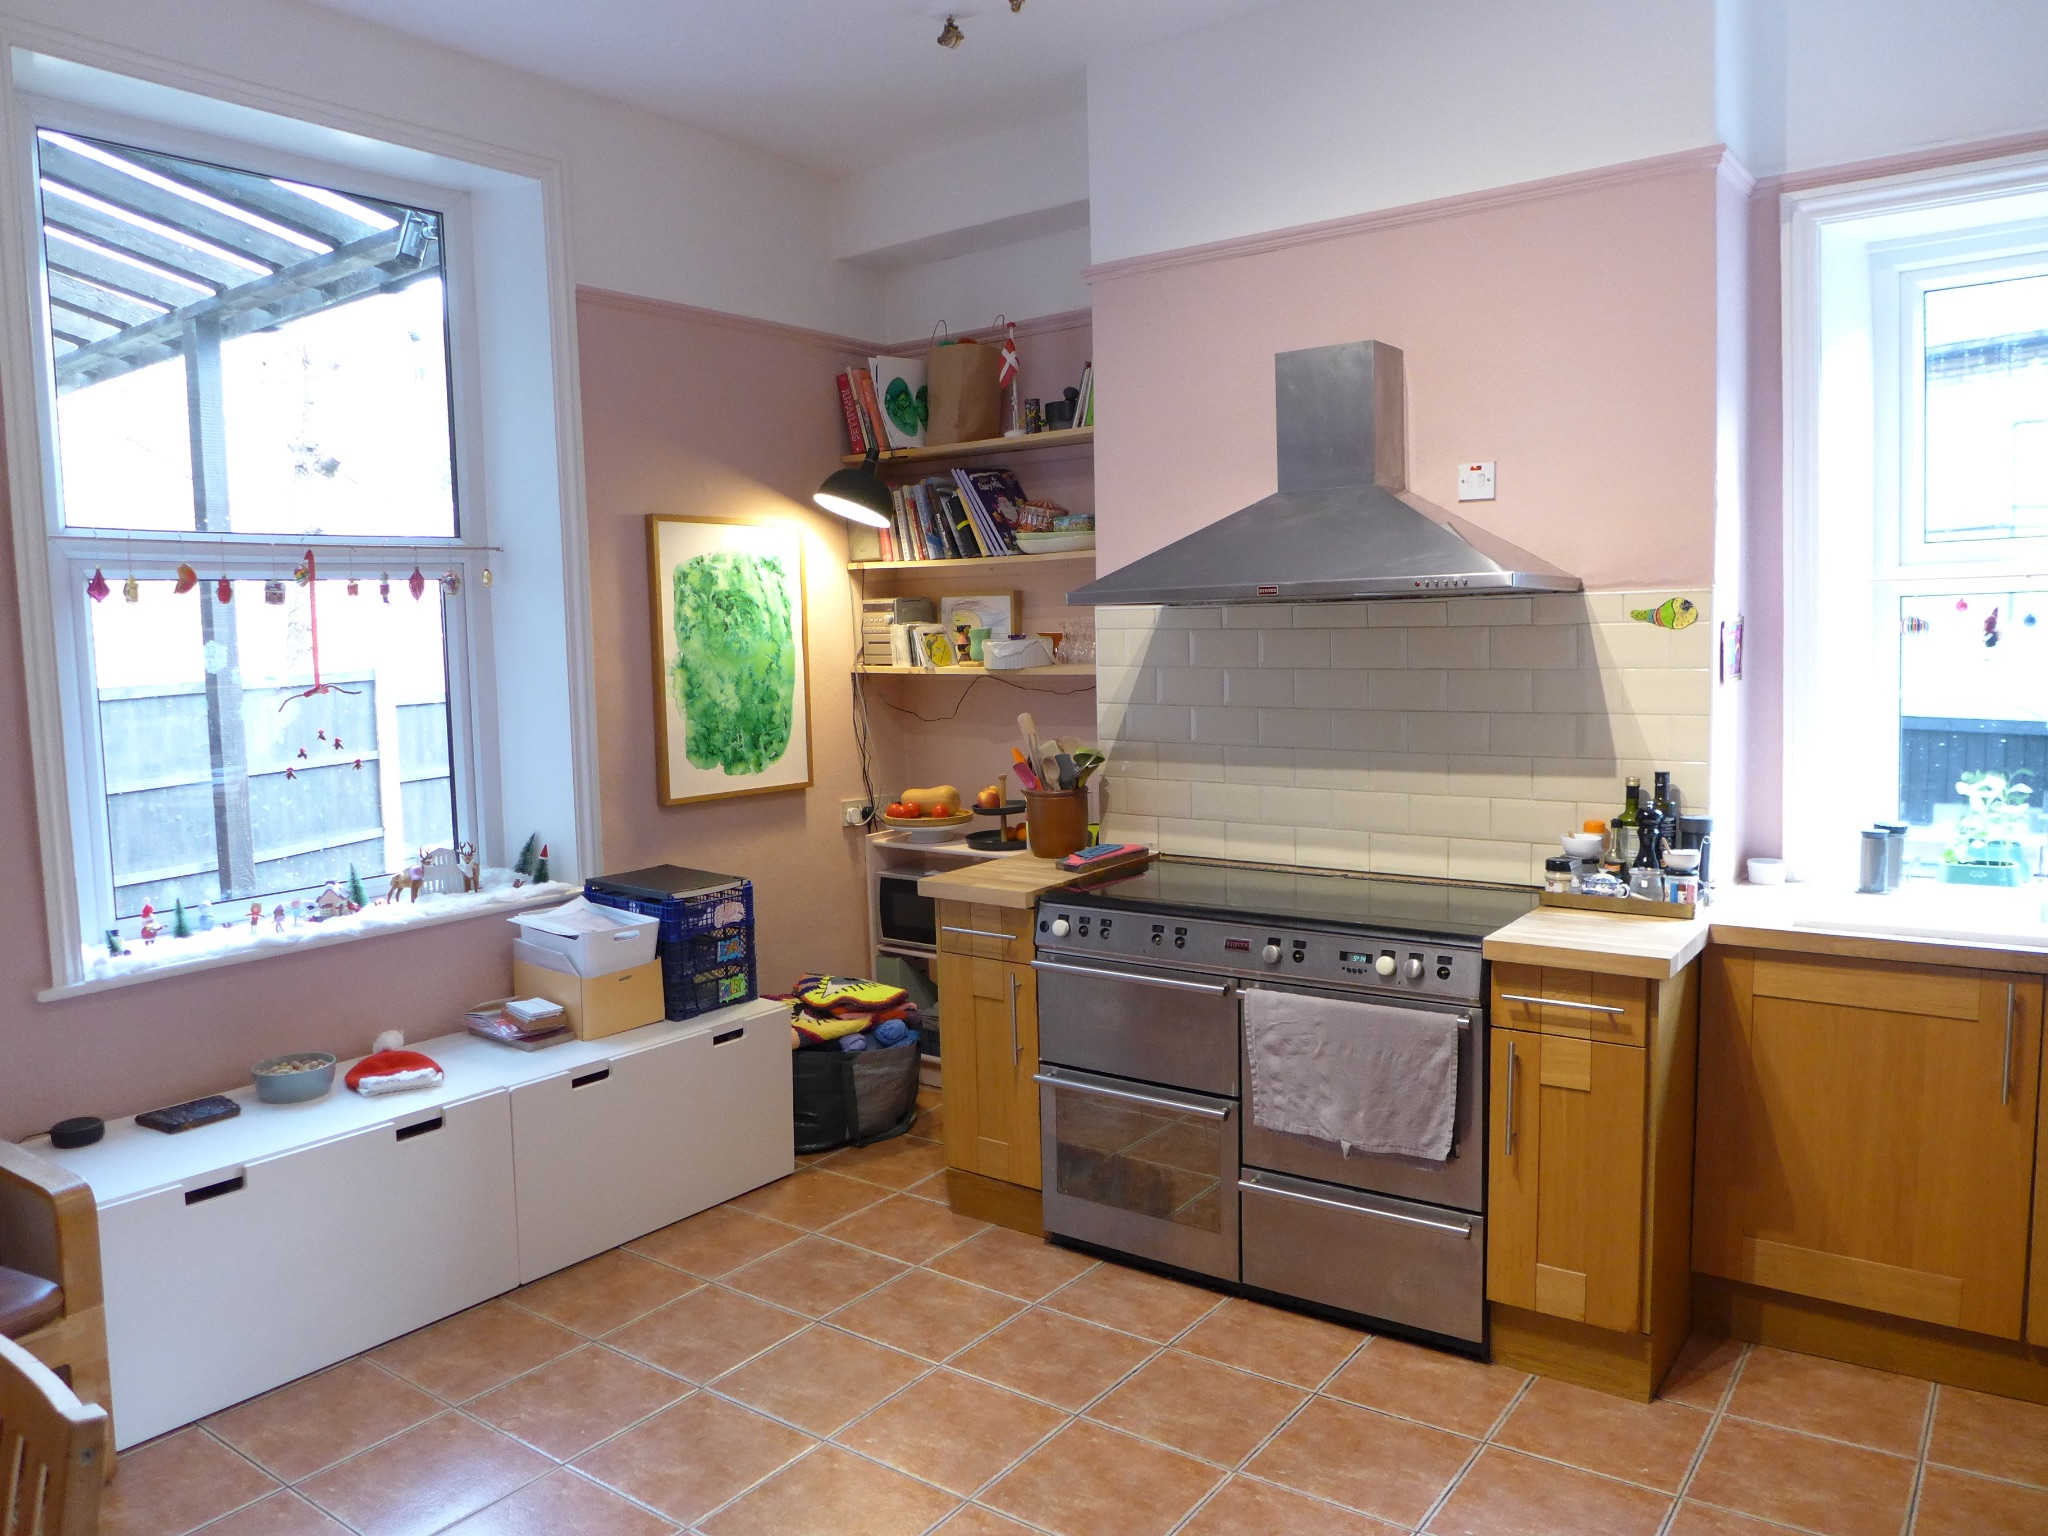 4 bedroom end terraced house For Sale in Calderdale - Photograph 8.